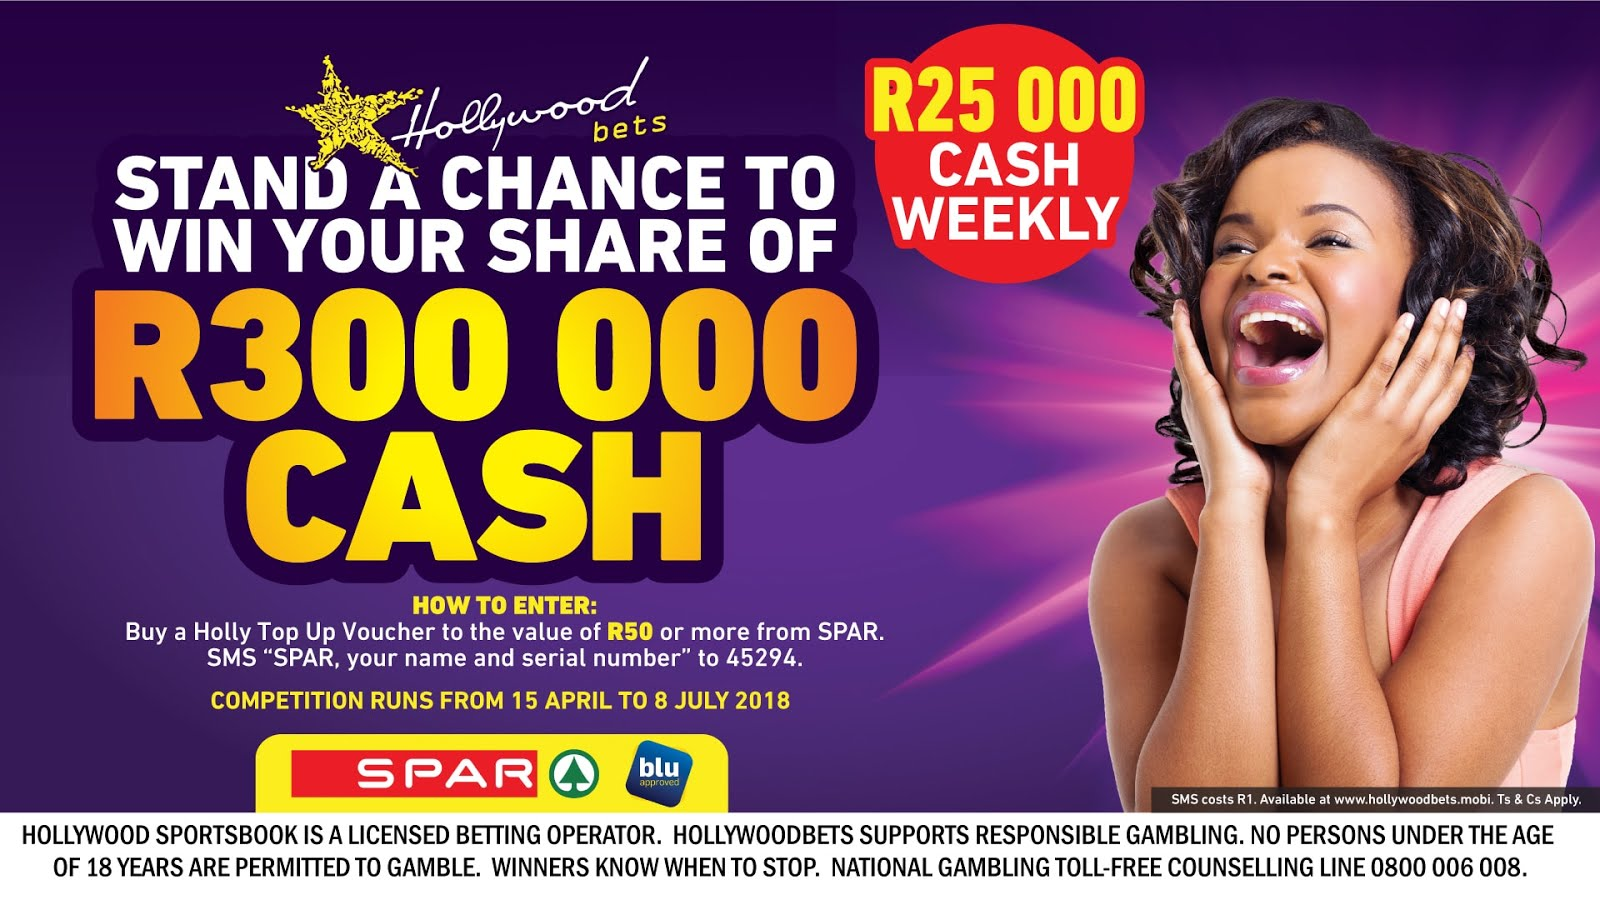 Stand a chance to win your share of R300,000 cash with Hollywoodbets and Top Up Vouchers bought at Spar!